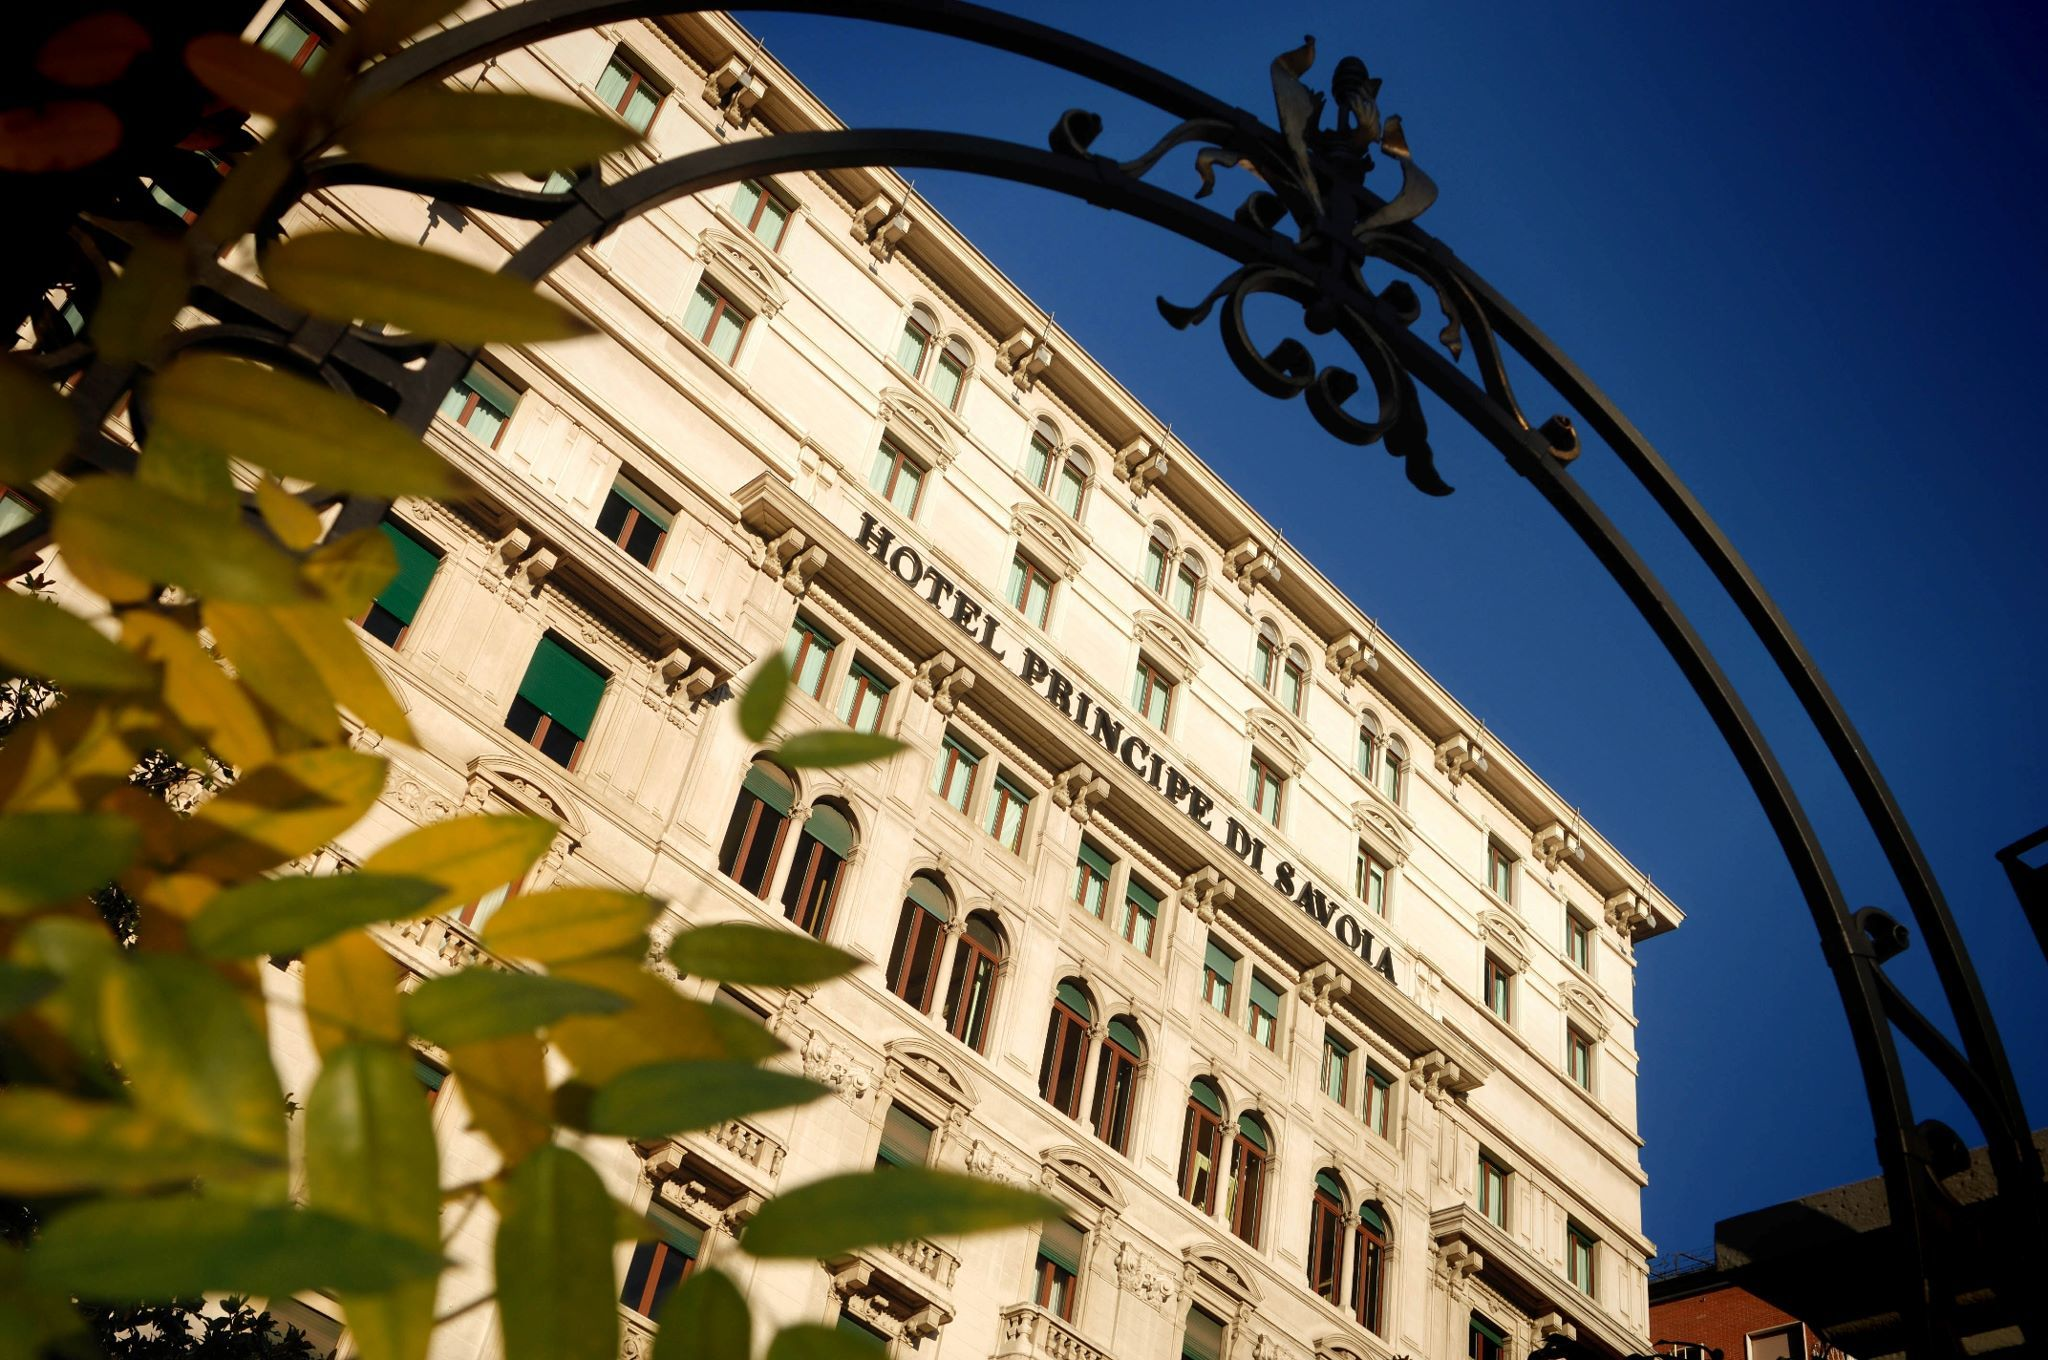 Hotel Principe di Savoia by Dorchester Collection